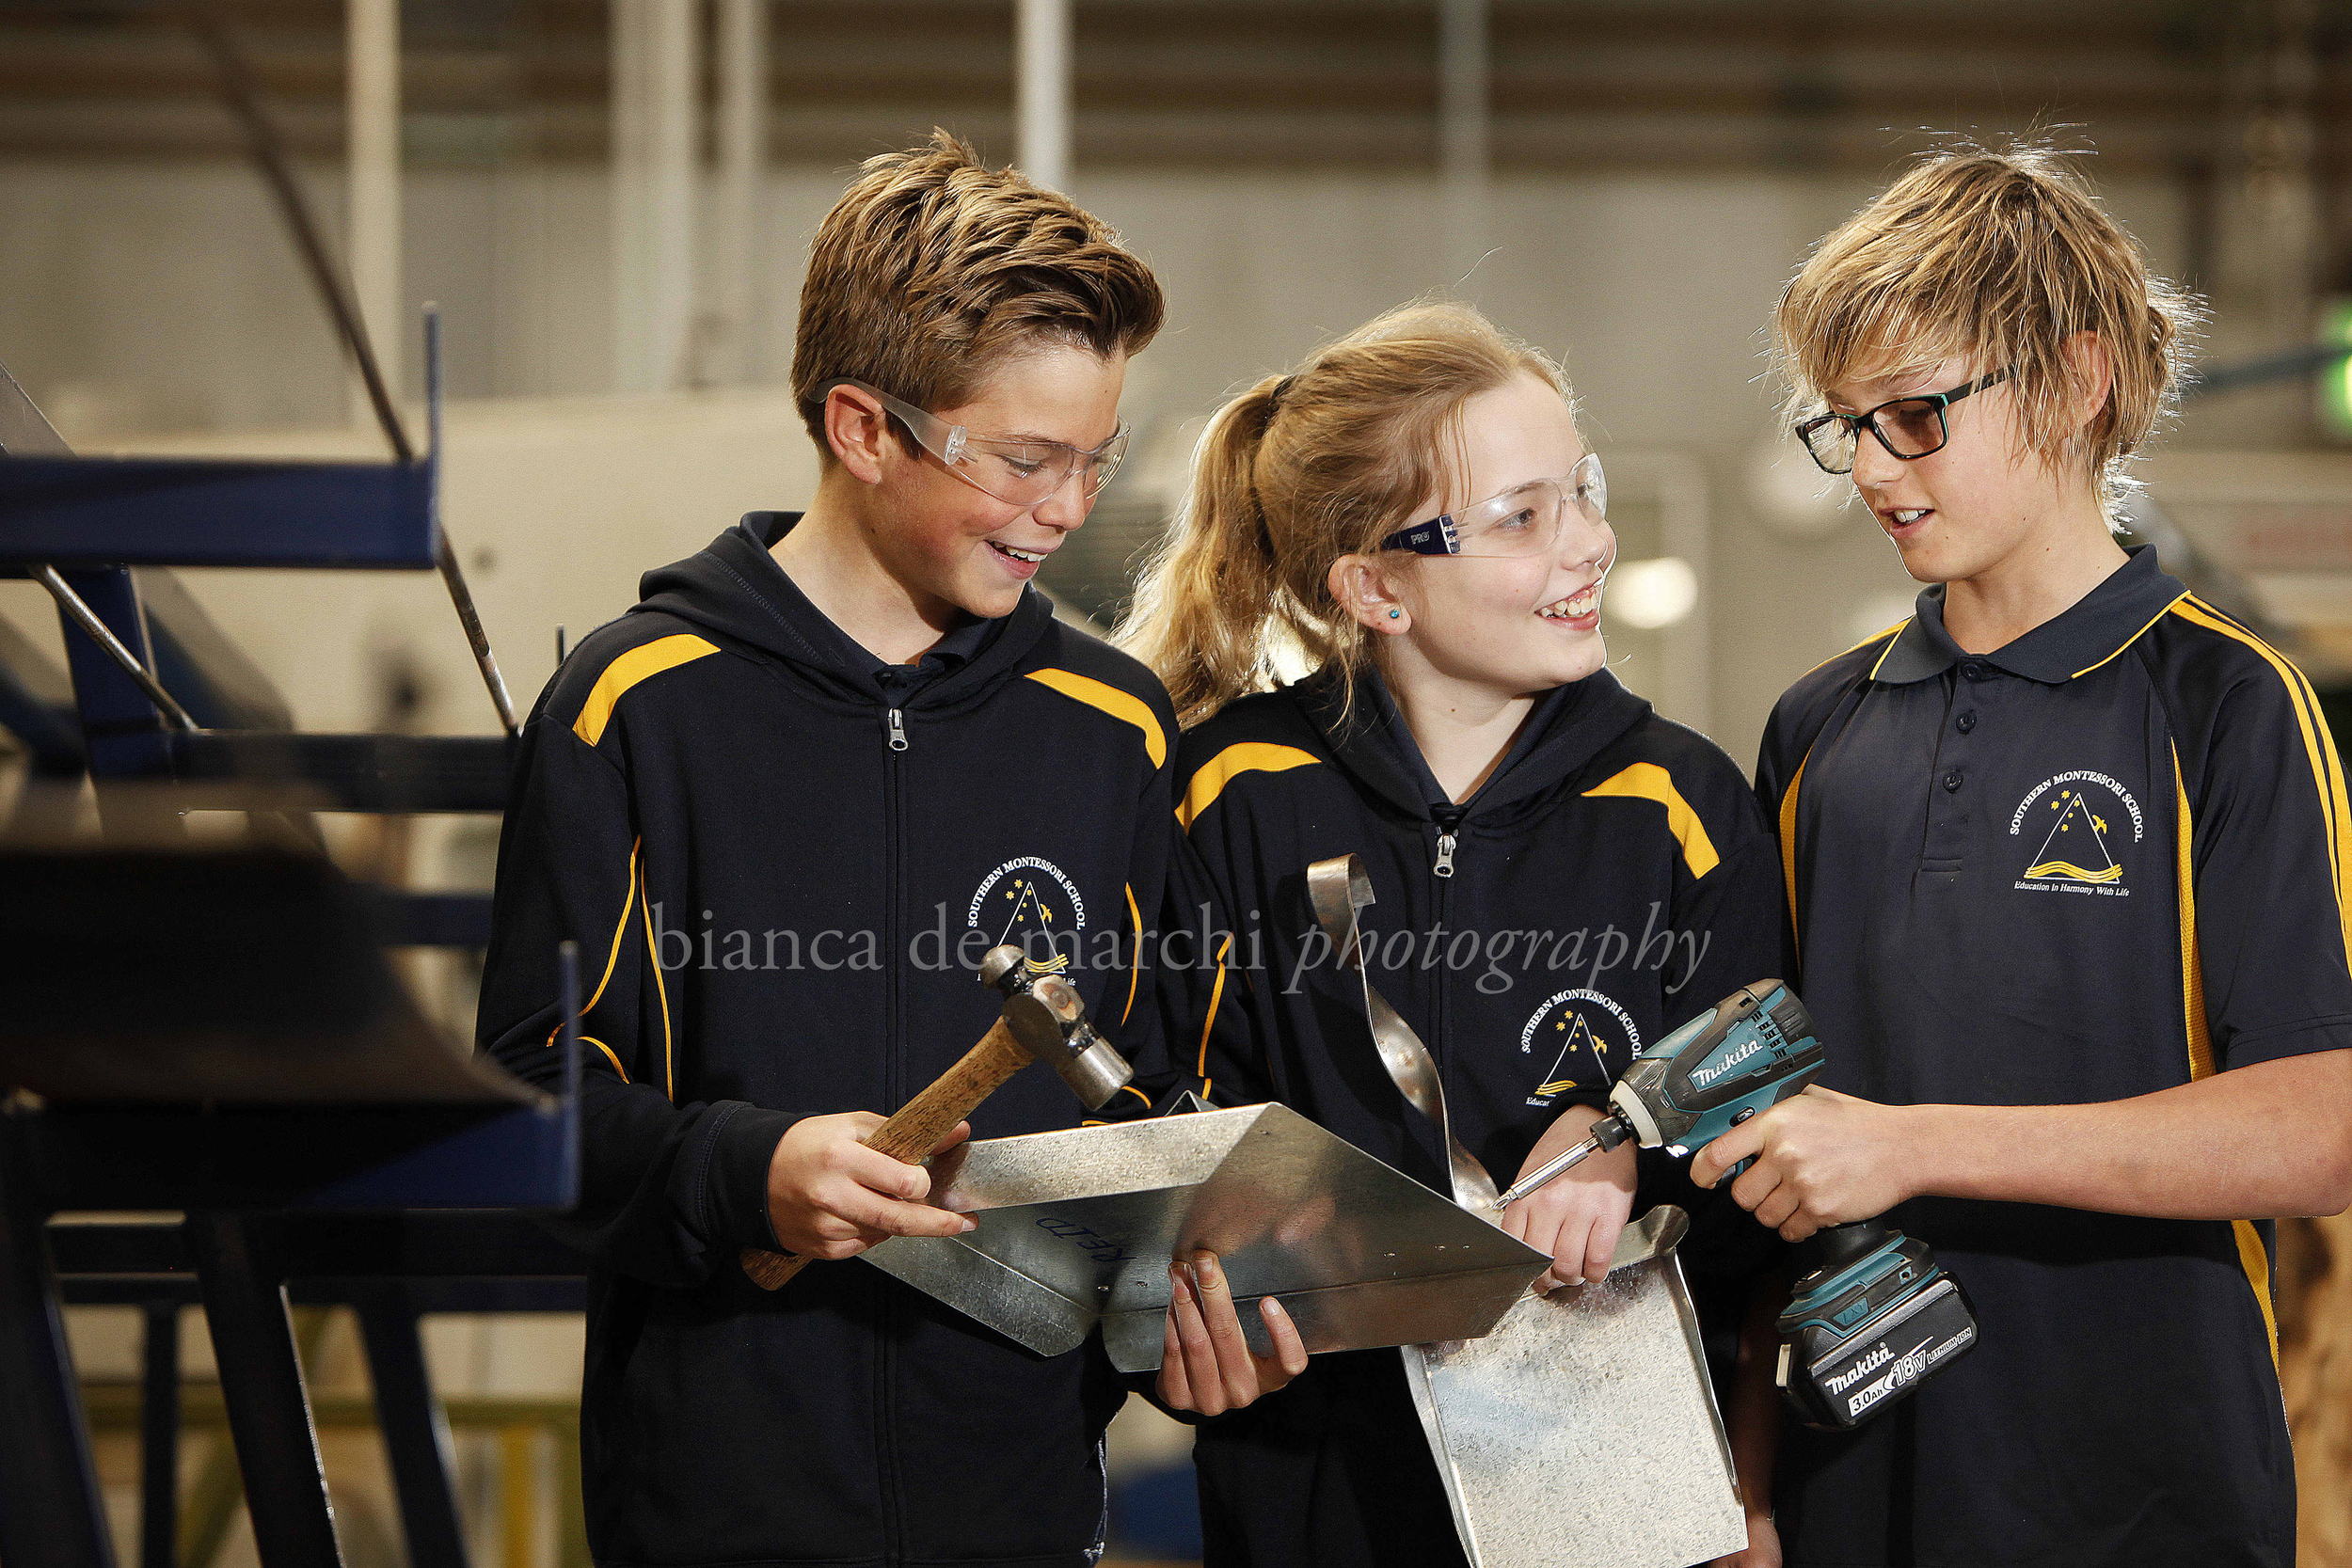 CHP_Export_119307447_THE STUDENTS FROM Southern Montessori School have been going to Marcellin Techn.jpg